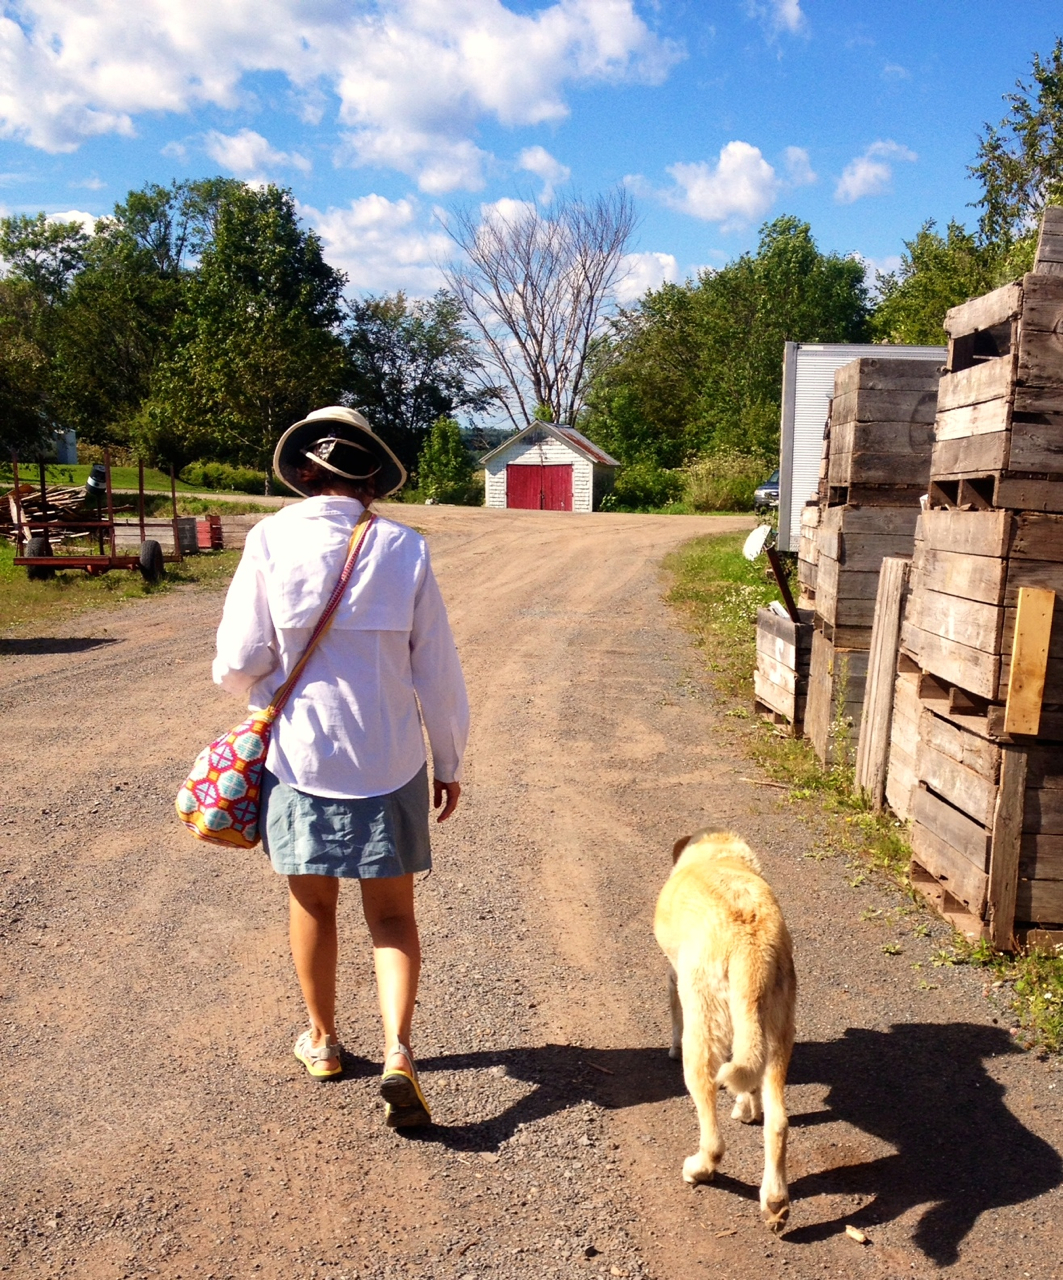 Brenda's dog decided to walk us from the Gagetown Cider Company's   warehouse to our Zodiac, which we had left at Fox's Wharf, right at the entrance of the orchards.  Remarkably, he waited at the wharf until we tied off, then immediately he got up and went home.